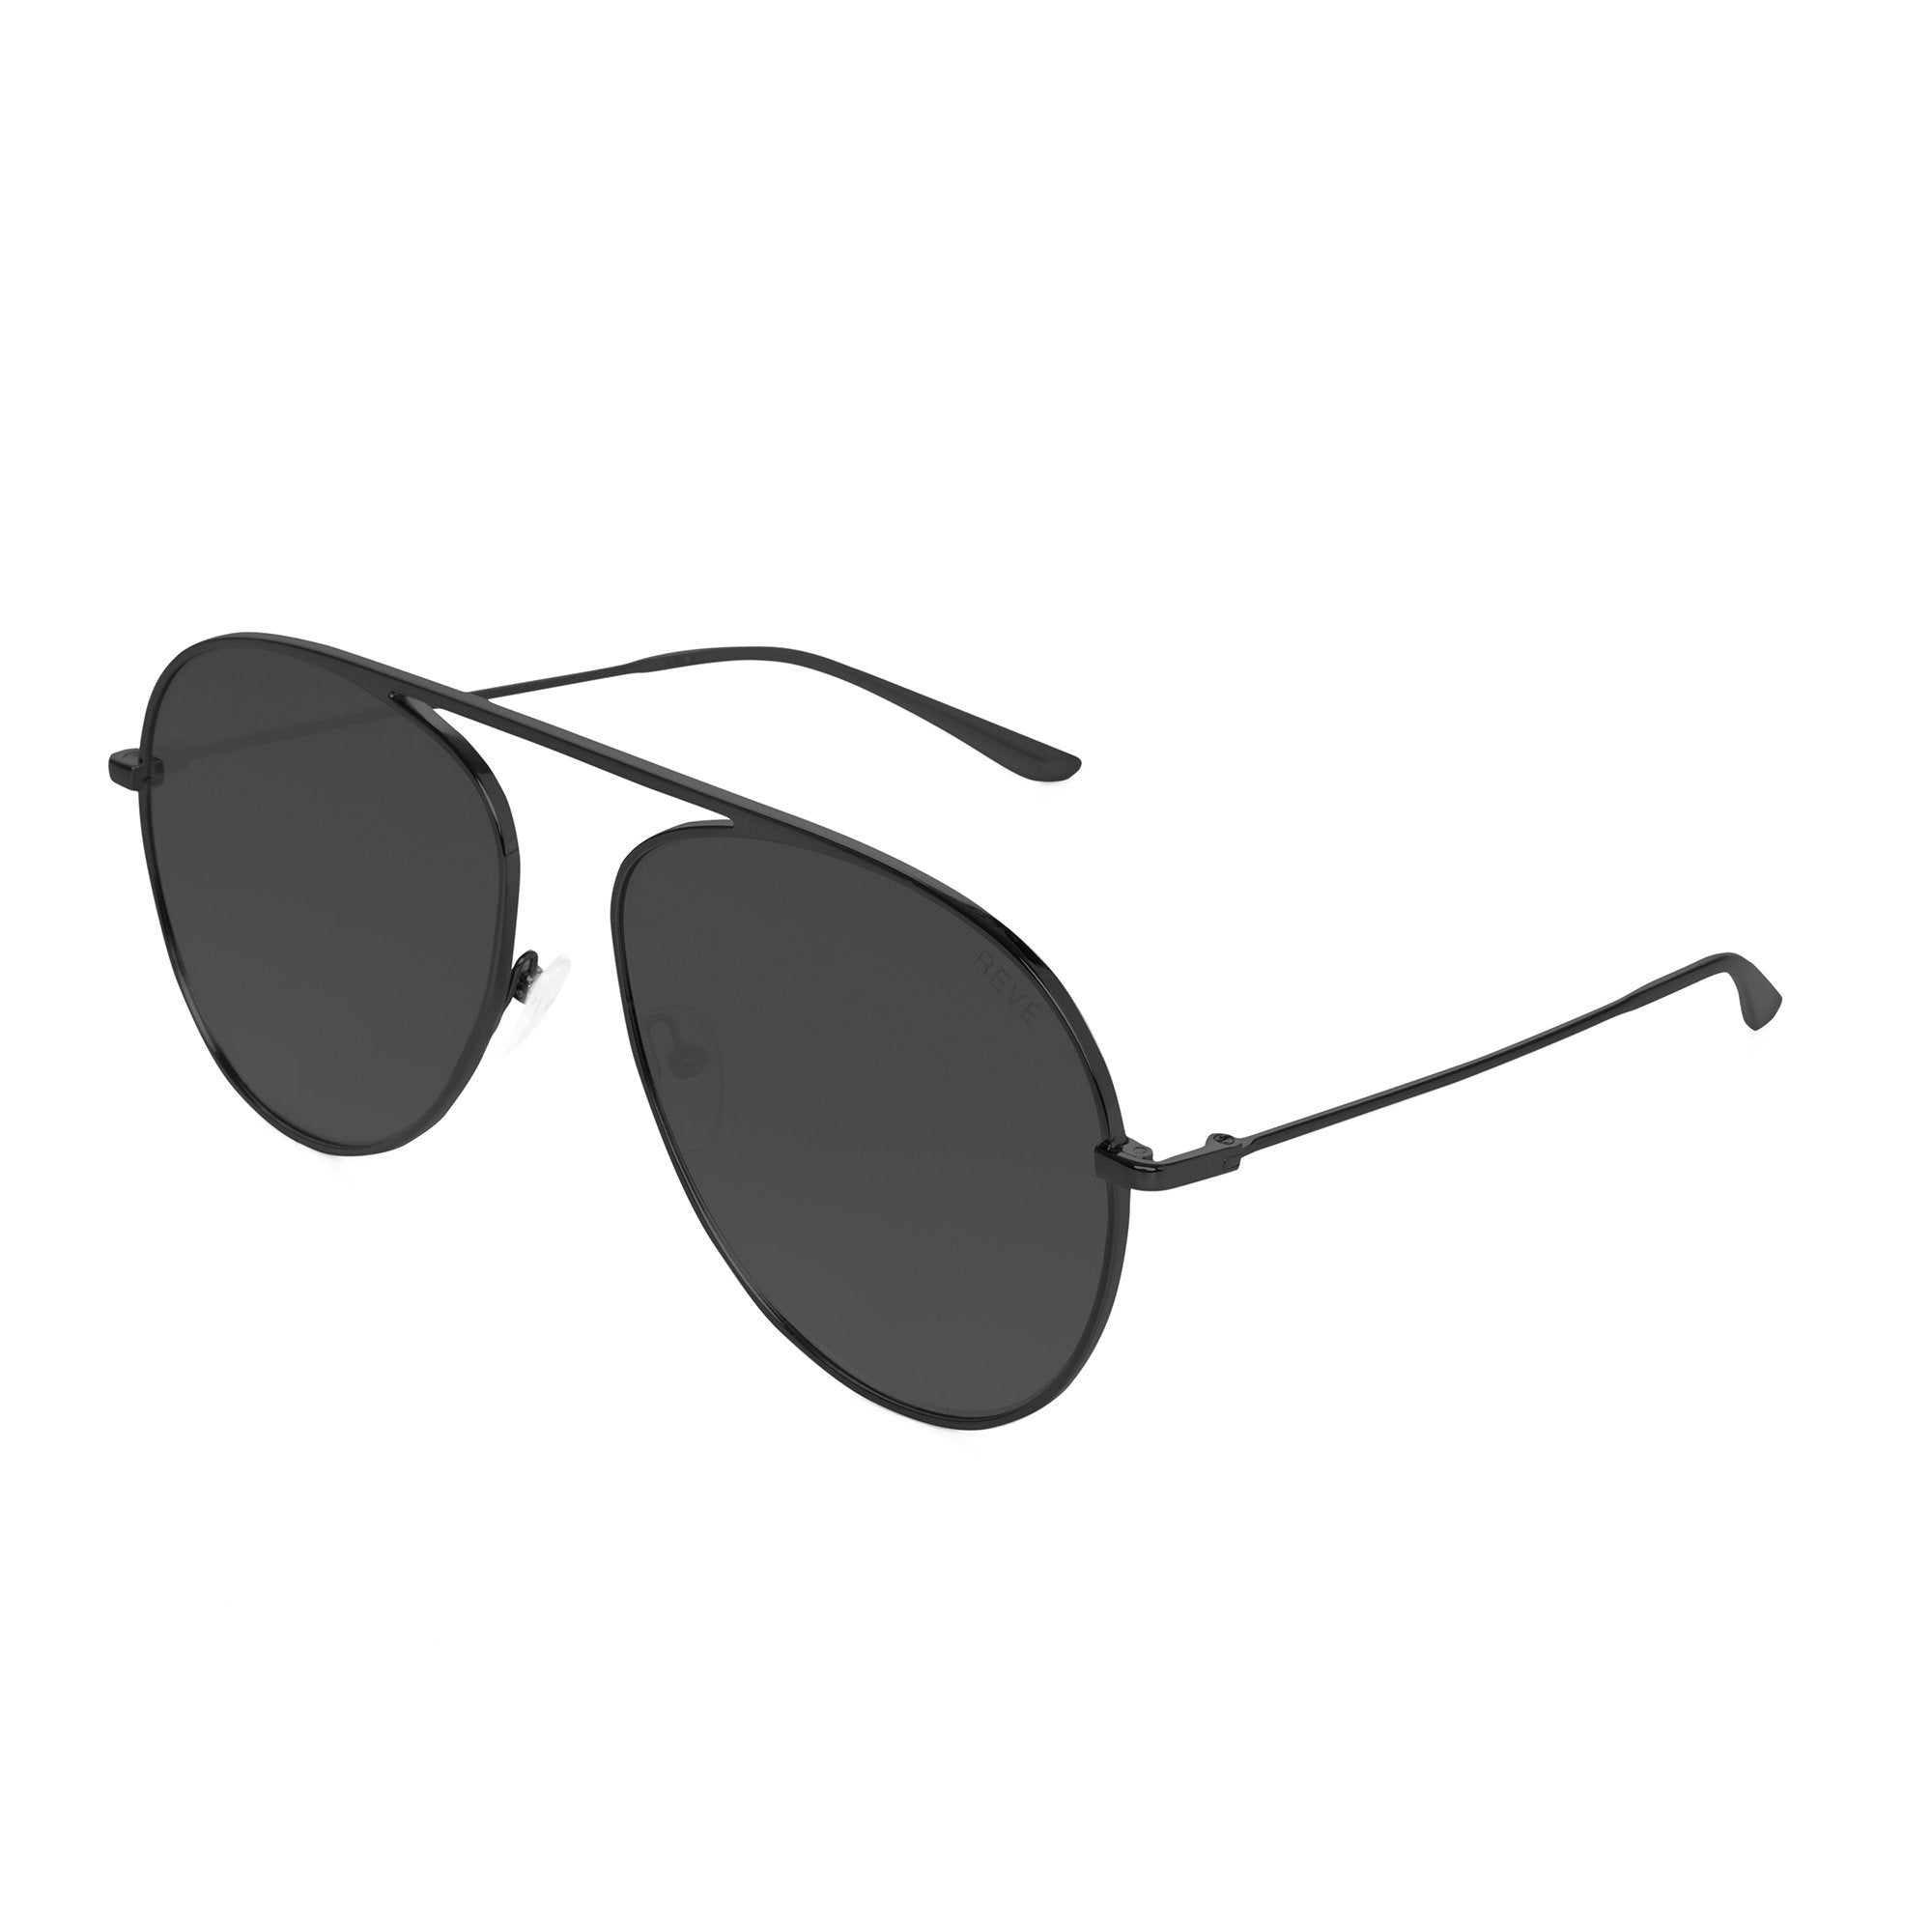 REVE by RENE glimpse sunglasses